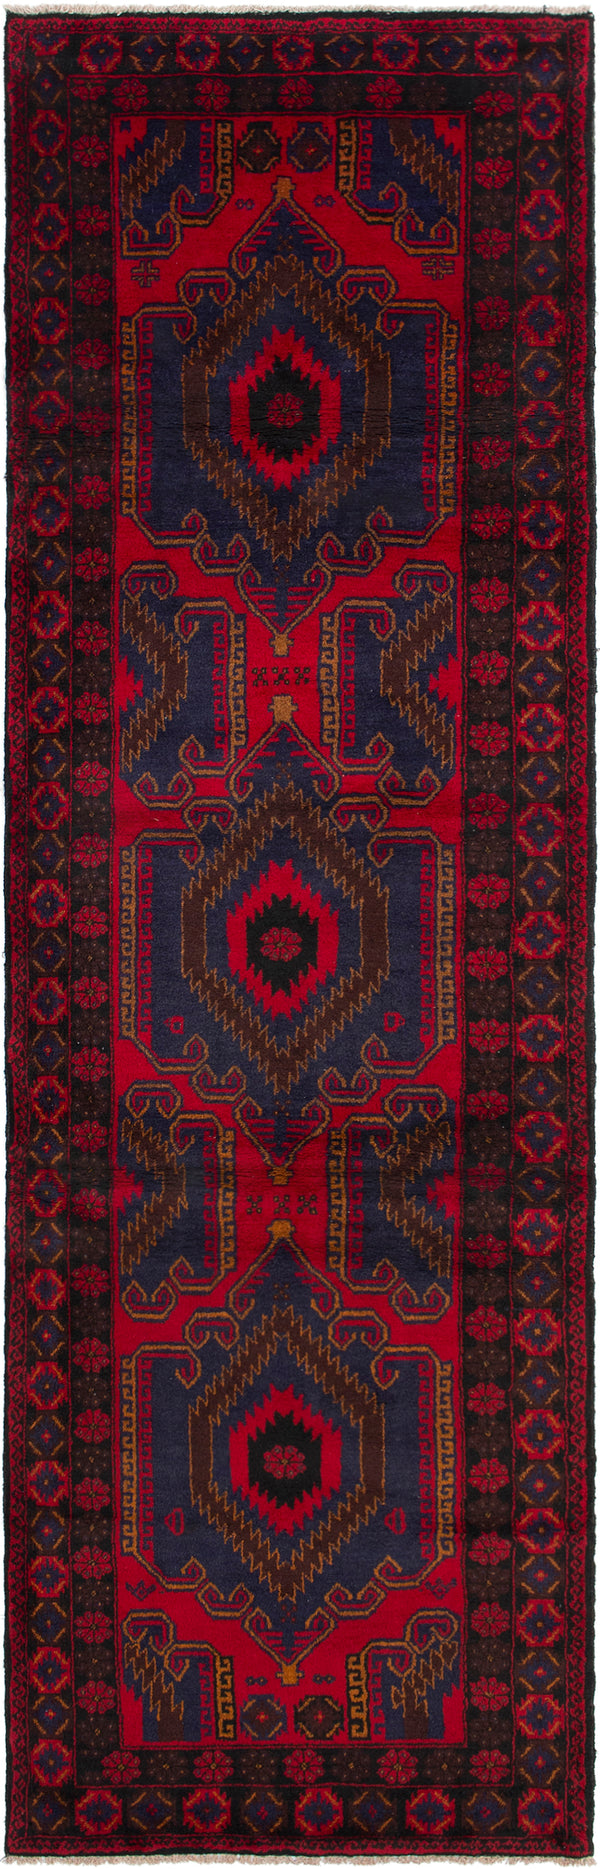 Hand-knotted Afghan Bordered  Tribal Rizbaft Runner rug  Red 3.3 x 11